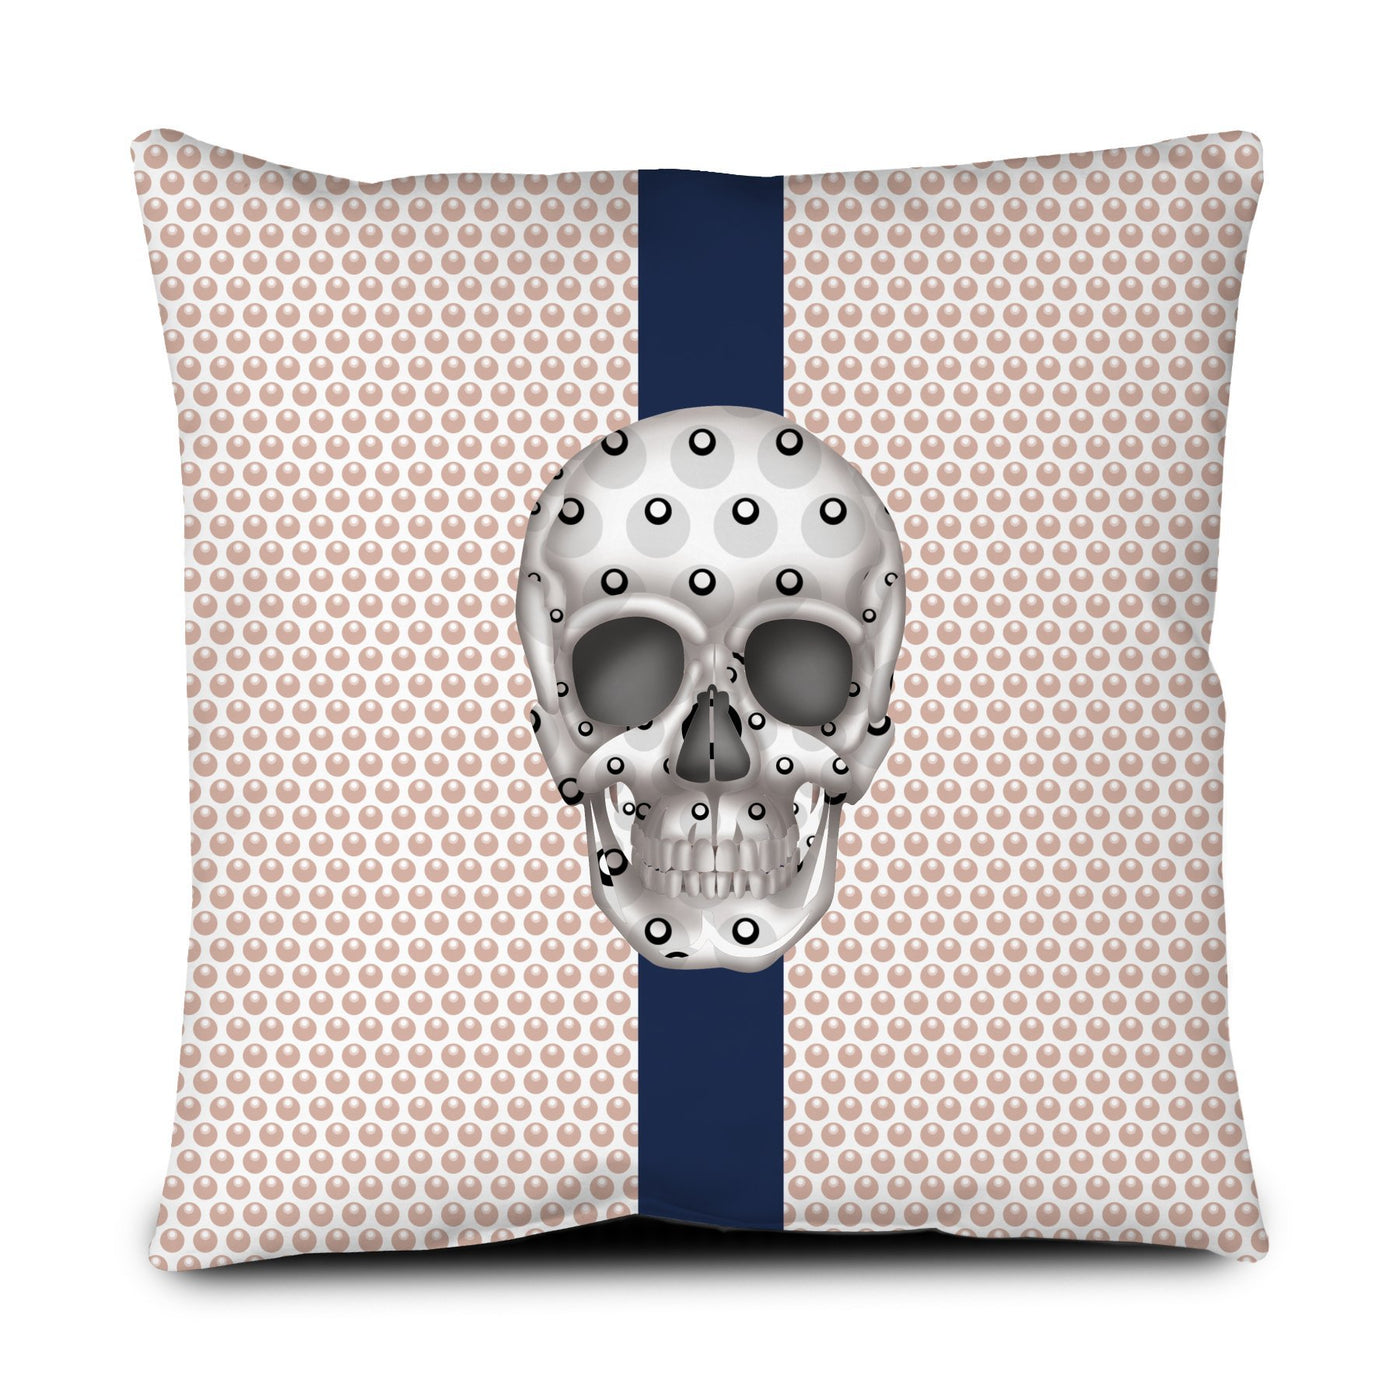 Floor Pillow - Skull Luna Stripe Millennial/Nero throw LeighDeux, LLC